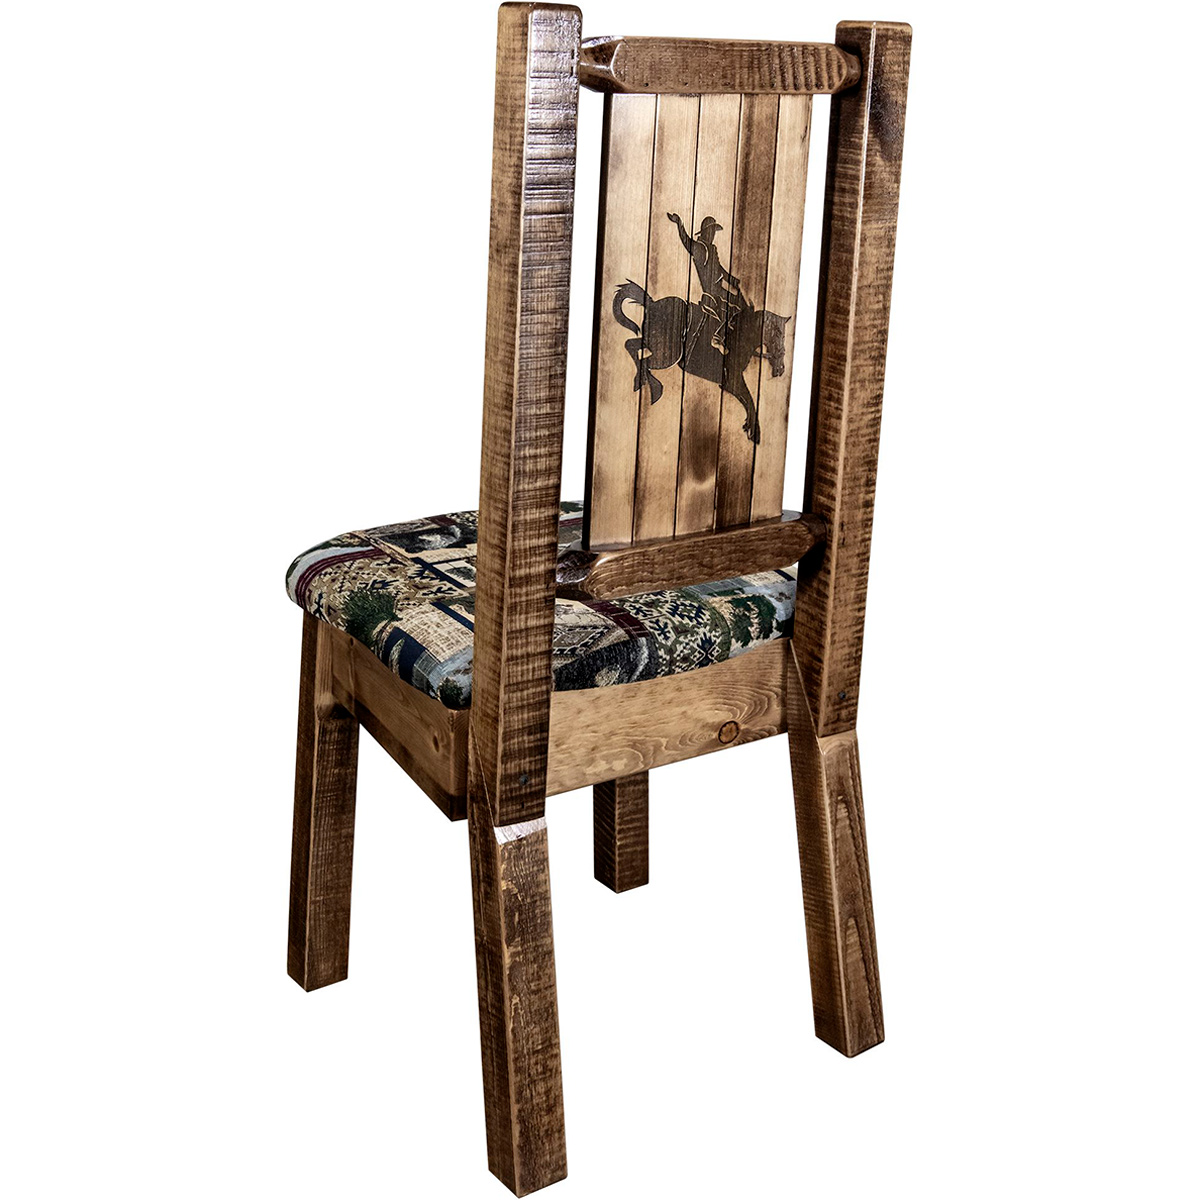 Ranchman's Woodland Upholstery Side Chair with Laser-Engraved Bronc Design